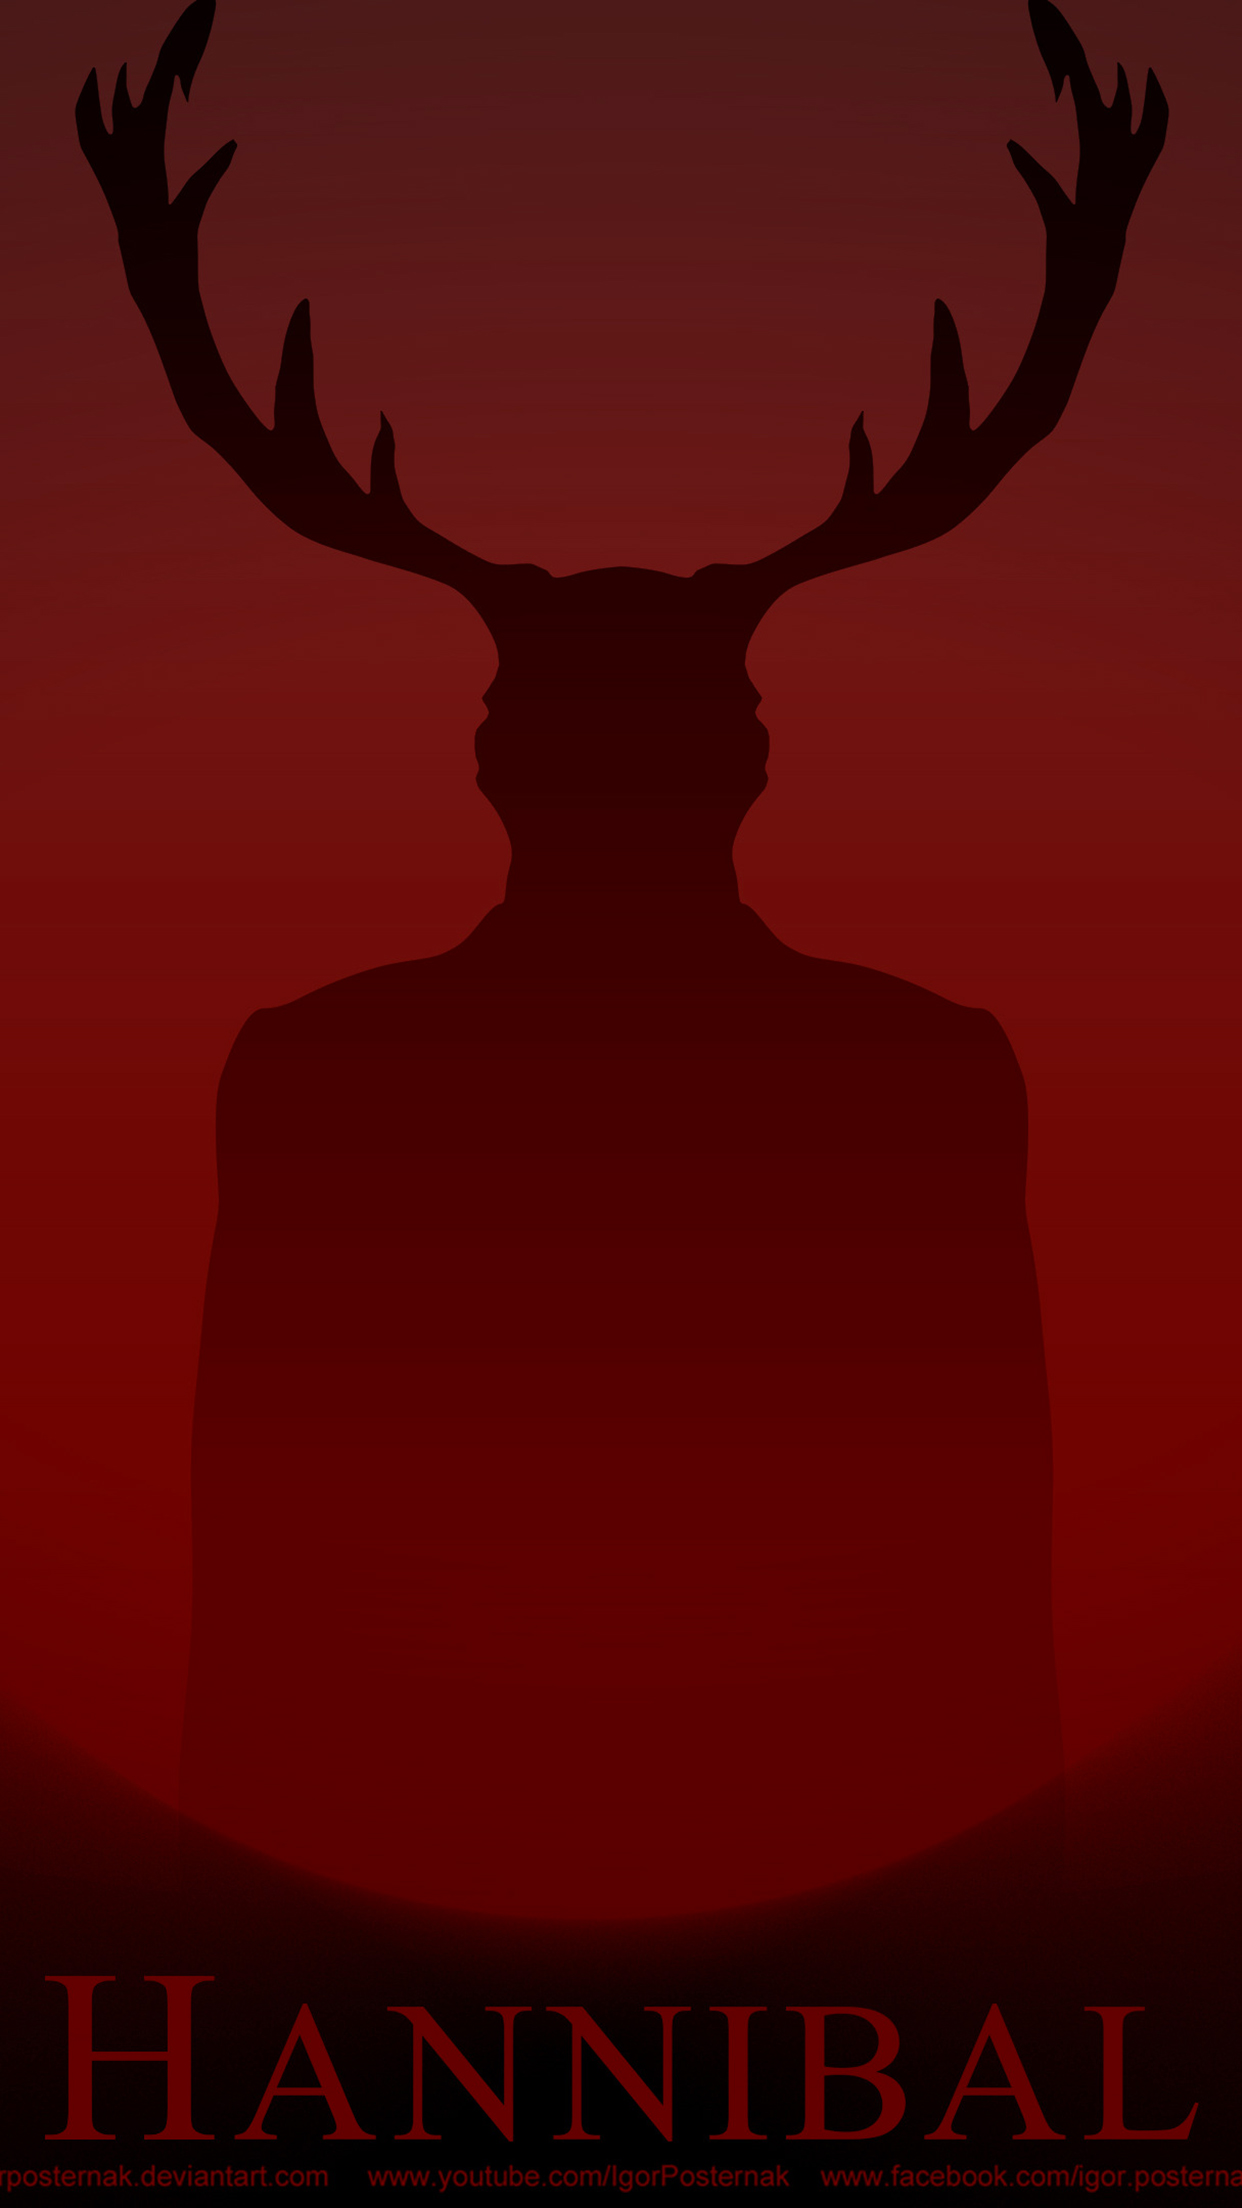 Hannibal Poster iPhone 3Wallpapers Parallax  Les 3 Wallpapers iPhone du jour (05/06/2015)